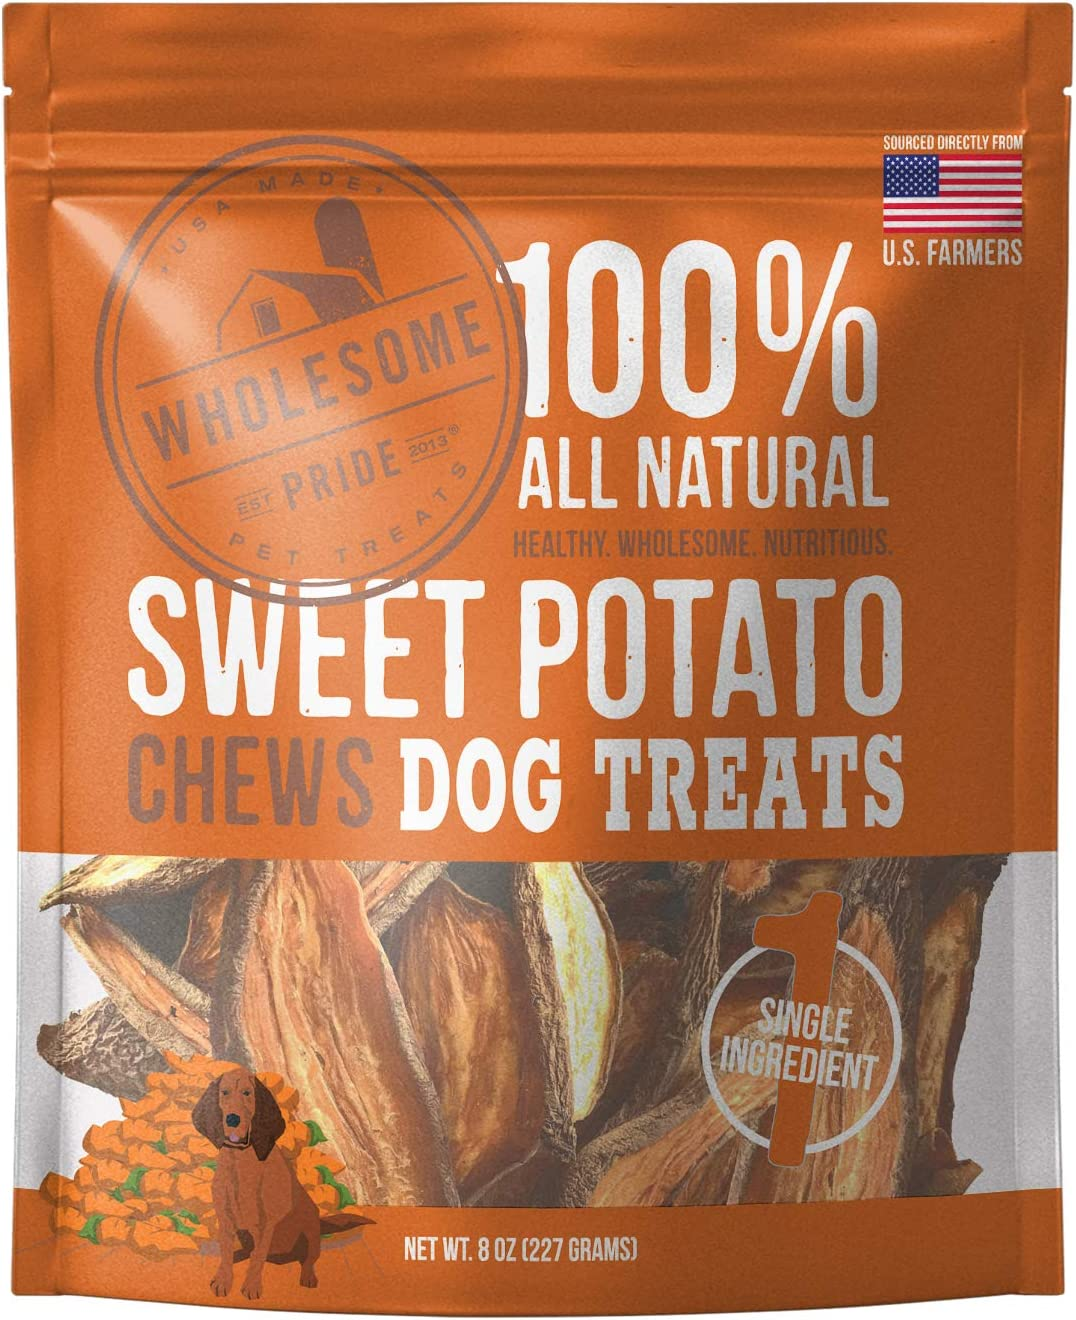 Wholesome Pride Sweet Potato Chews - All Natural Healthy Dog Treats - Vegan, Gluten and Grain-Free Dog Snacks, 8 Ounce